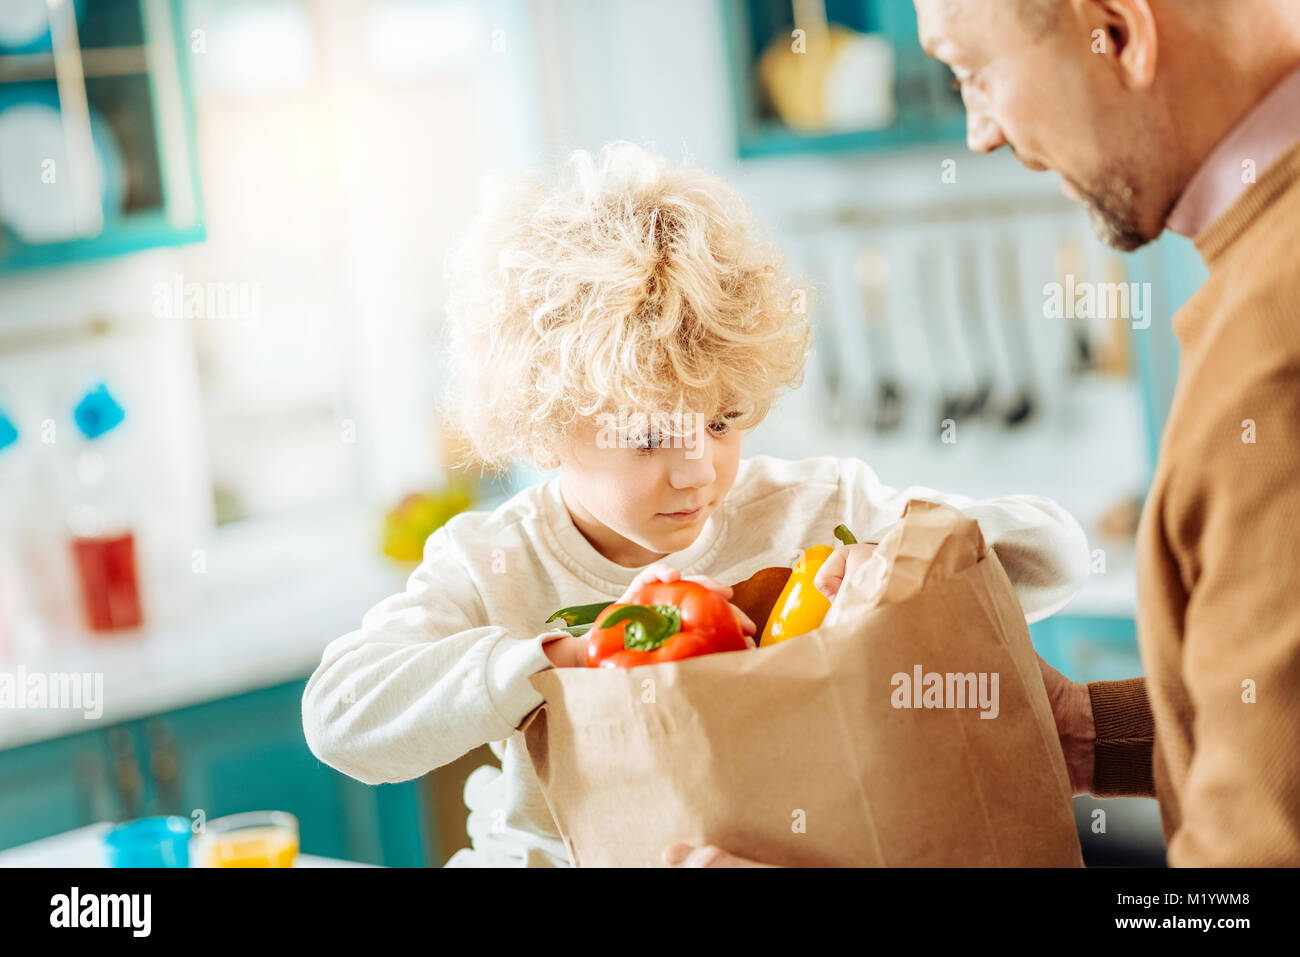 Cute curly boy looking into the bag - Stock Image